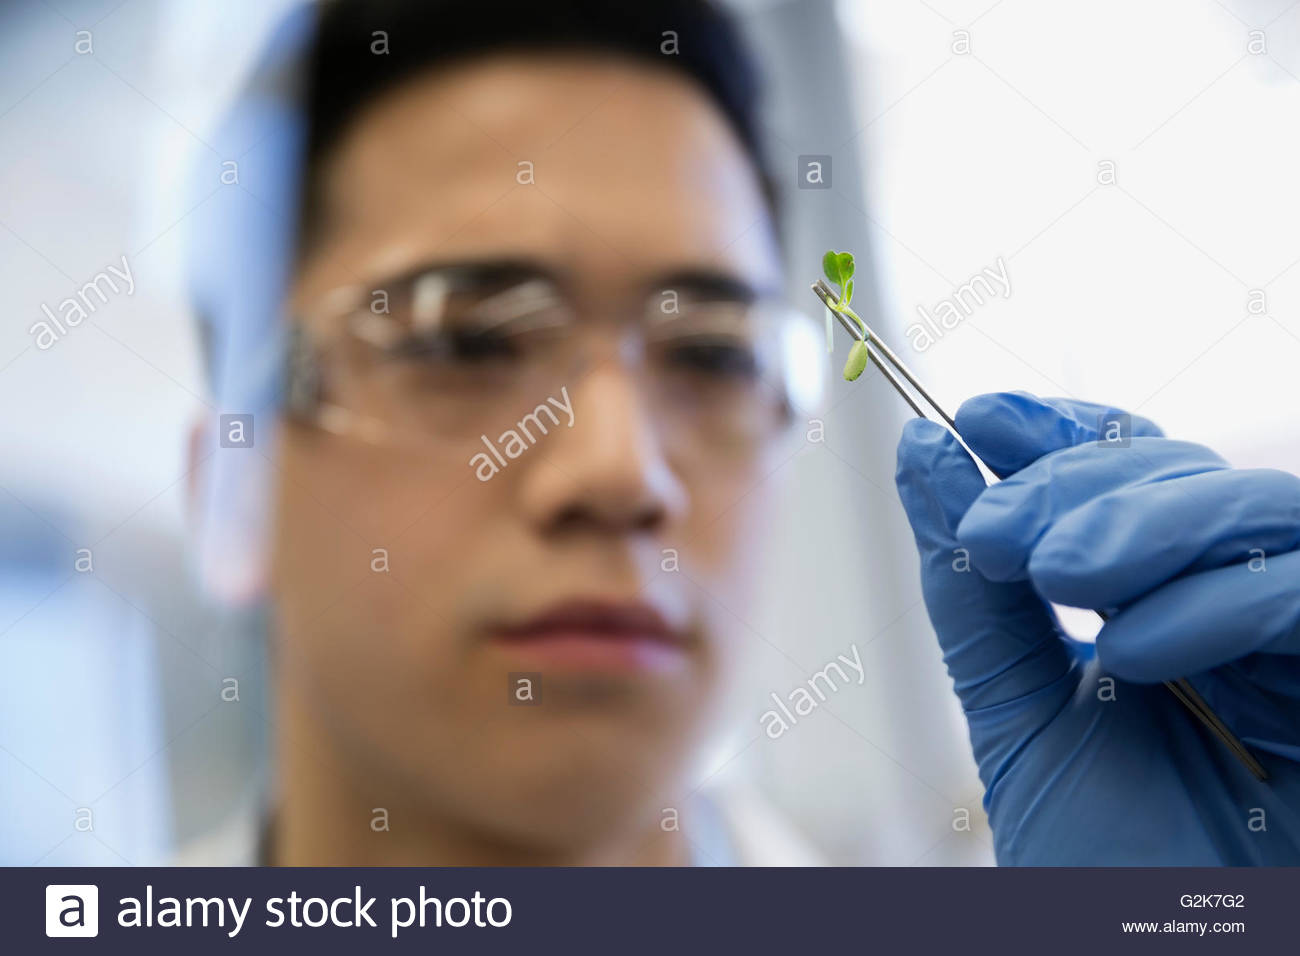 Close up scientist examining GMO sprout in laboratory - Stock Image